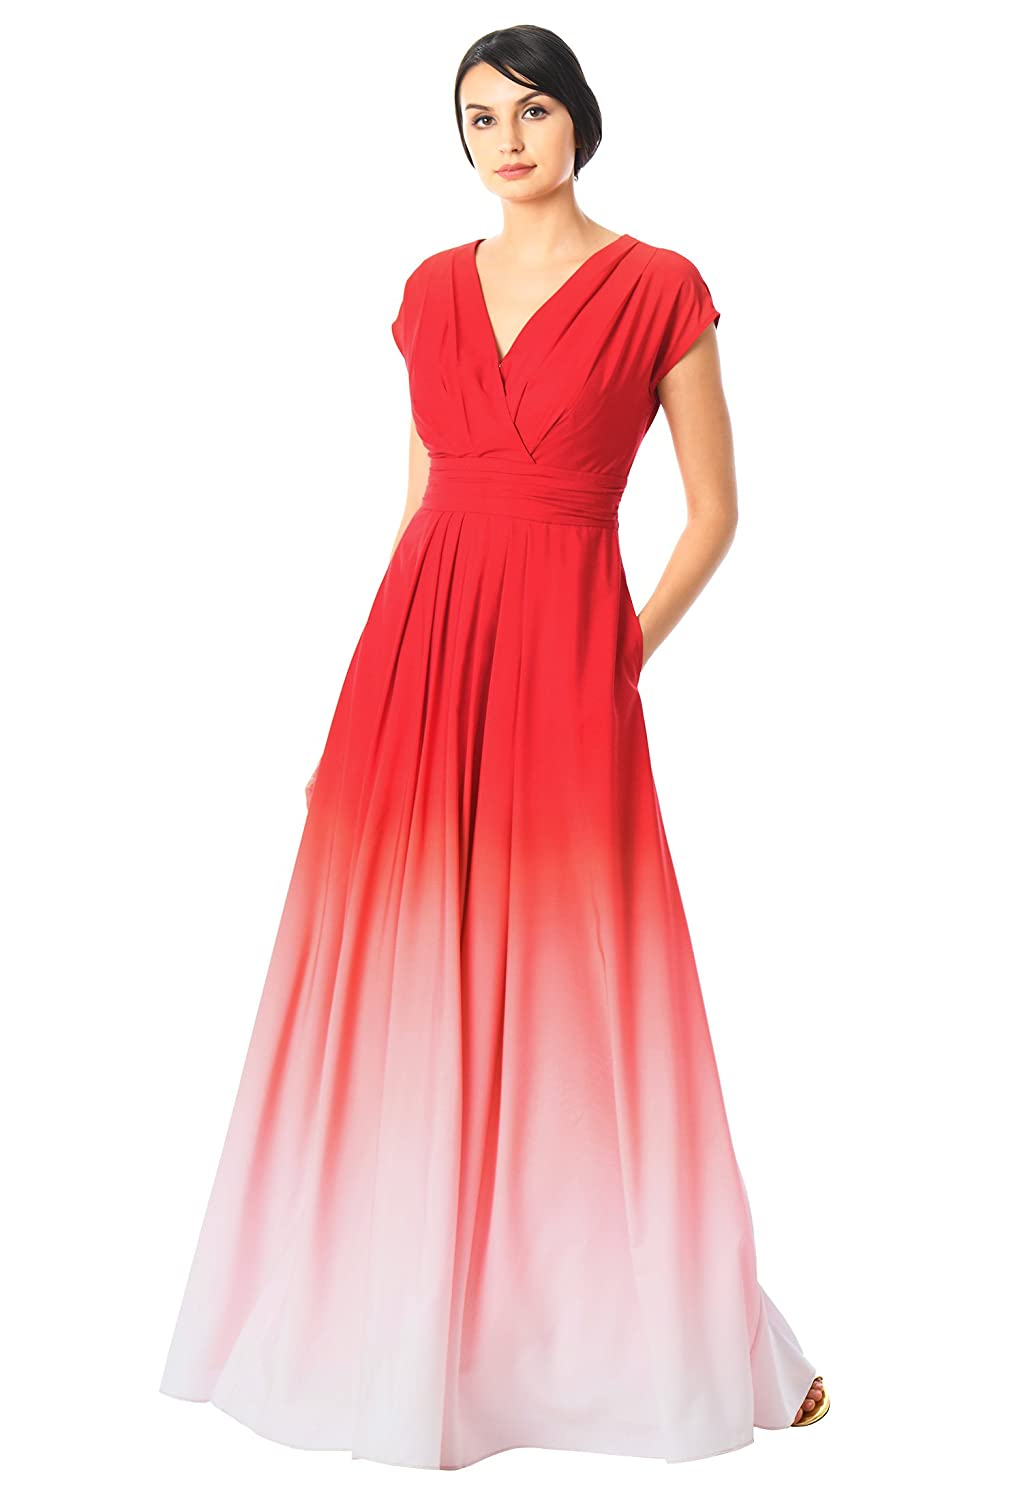 eShakti Womens Ombre print crepe surplice maxi dress: Amazon.co.uk: Clothing